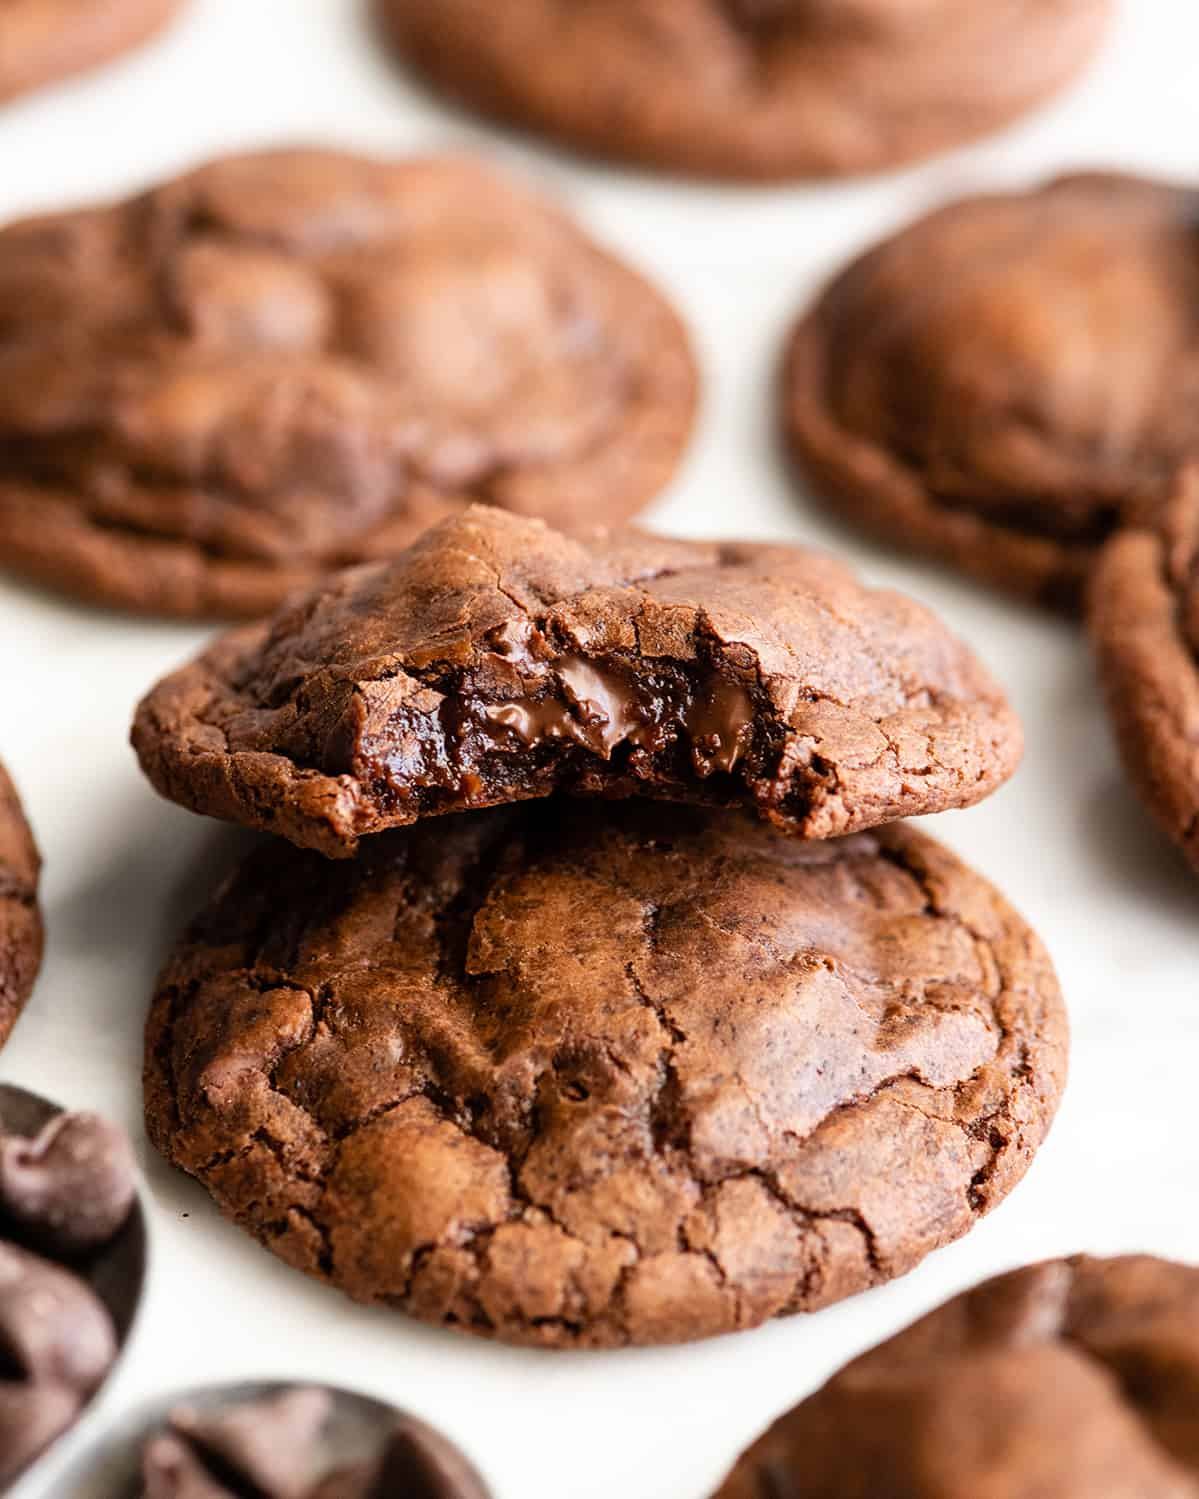 front view of Chocolate Brownie Cookies, one with a bite taken out of it